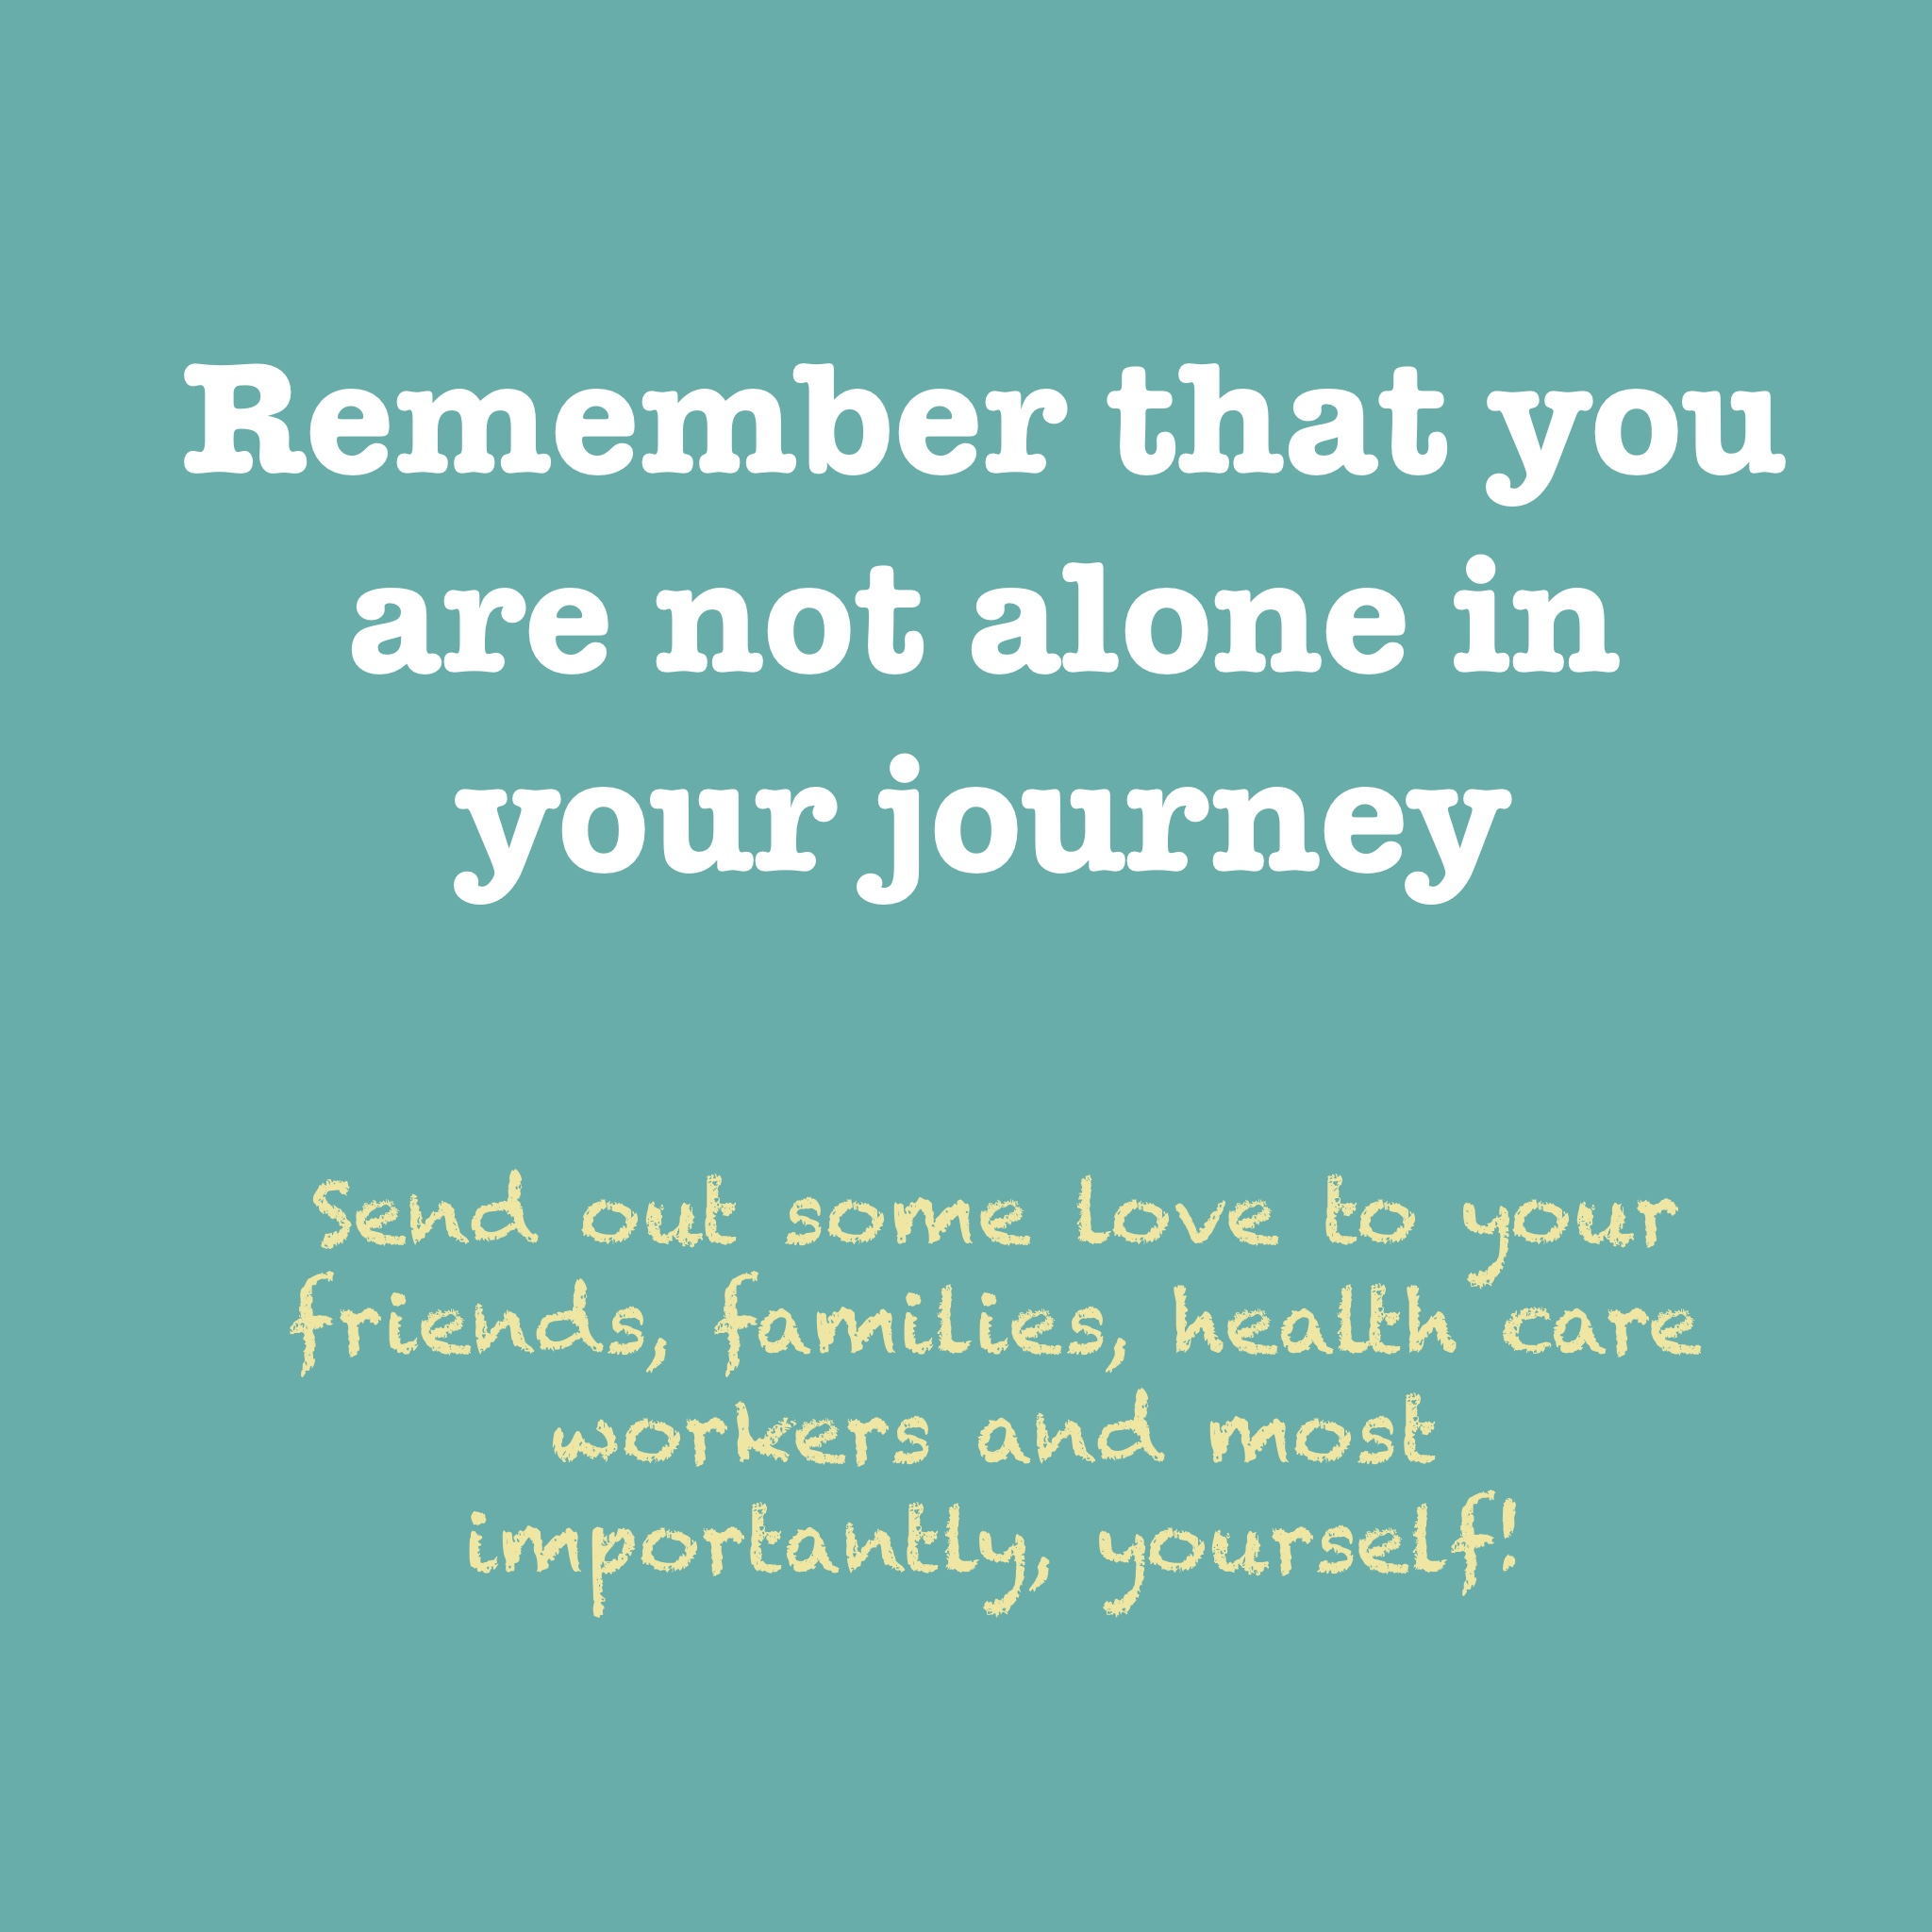 Remember that you are not alone